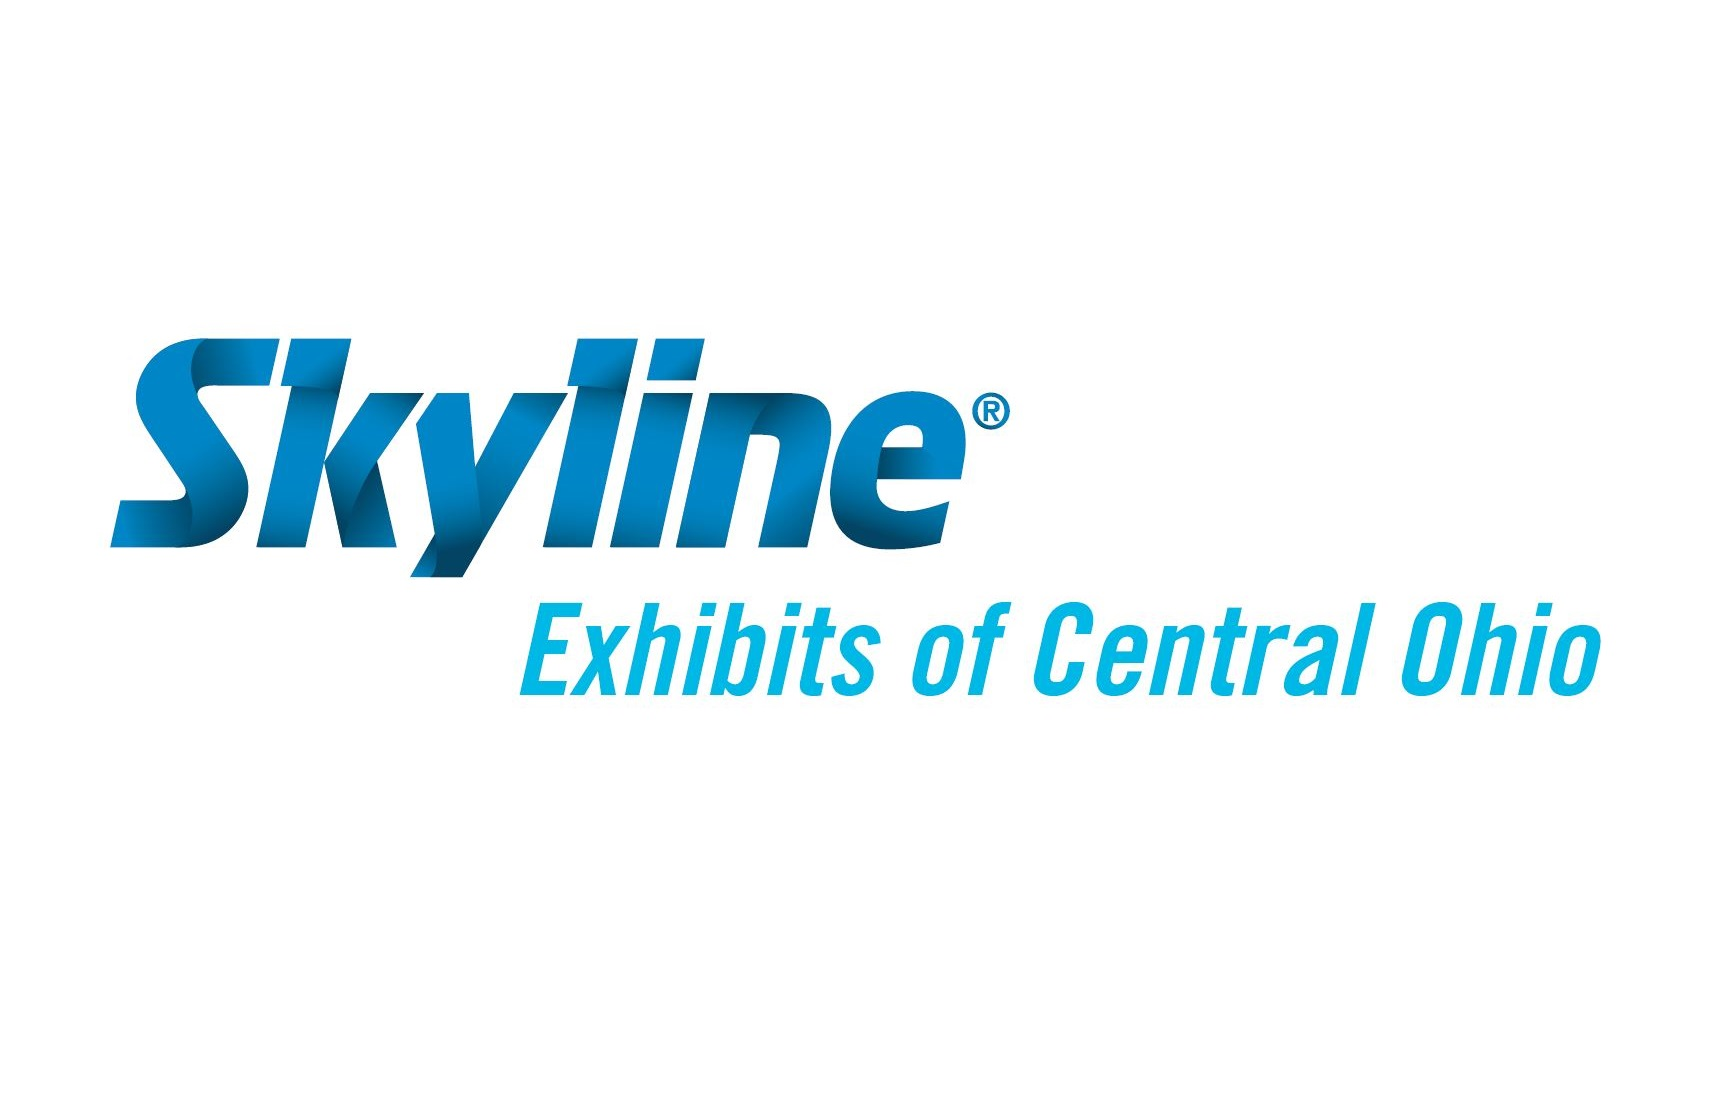 Skyline Exhibits of Central Ohio, LLC 2843 Charter Street / Columbus OH 43228 p: 614-684-2050 f: 614-684-2055